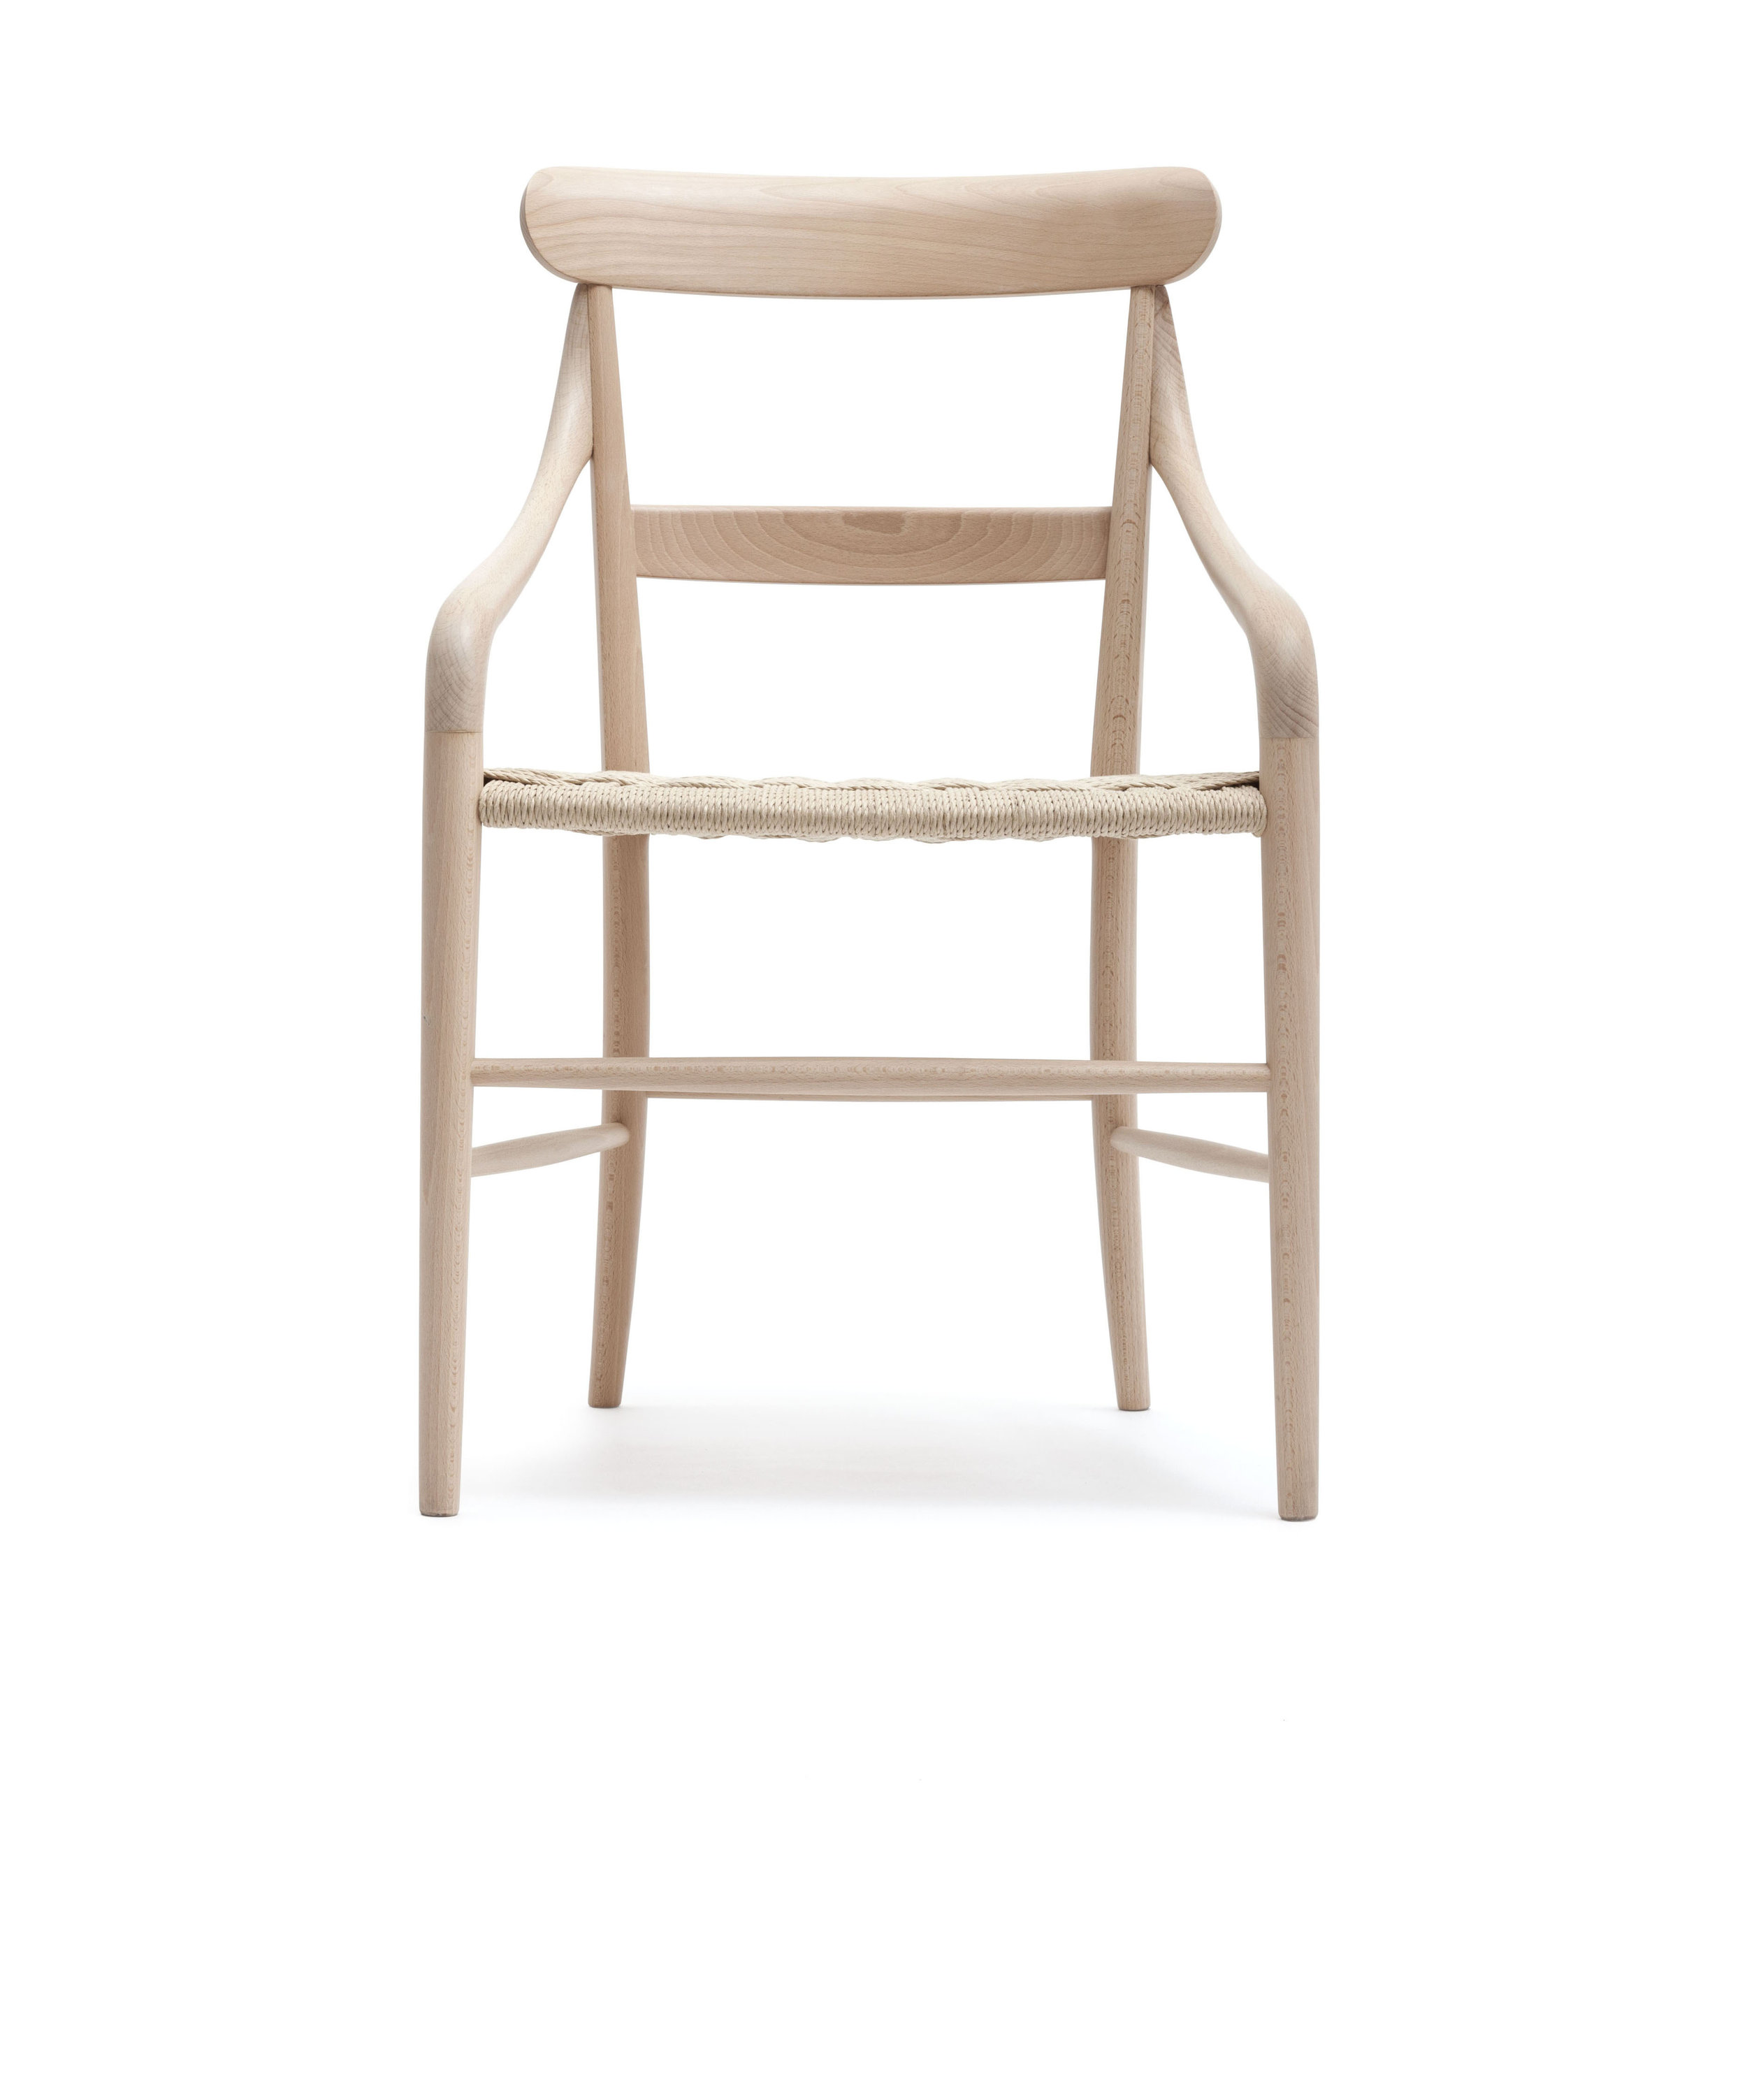 CC01 Natural Beech wood, paper cord seat